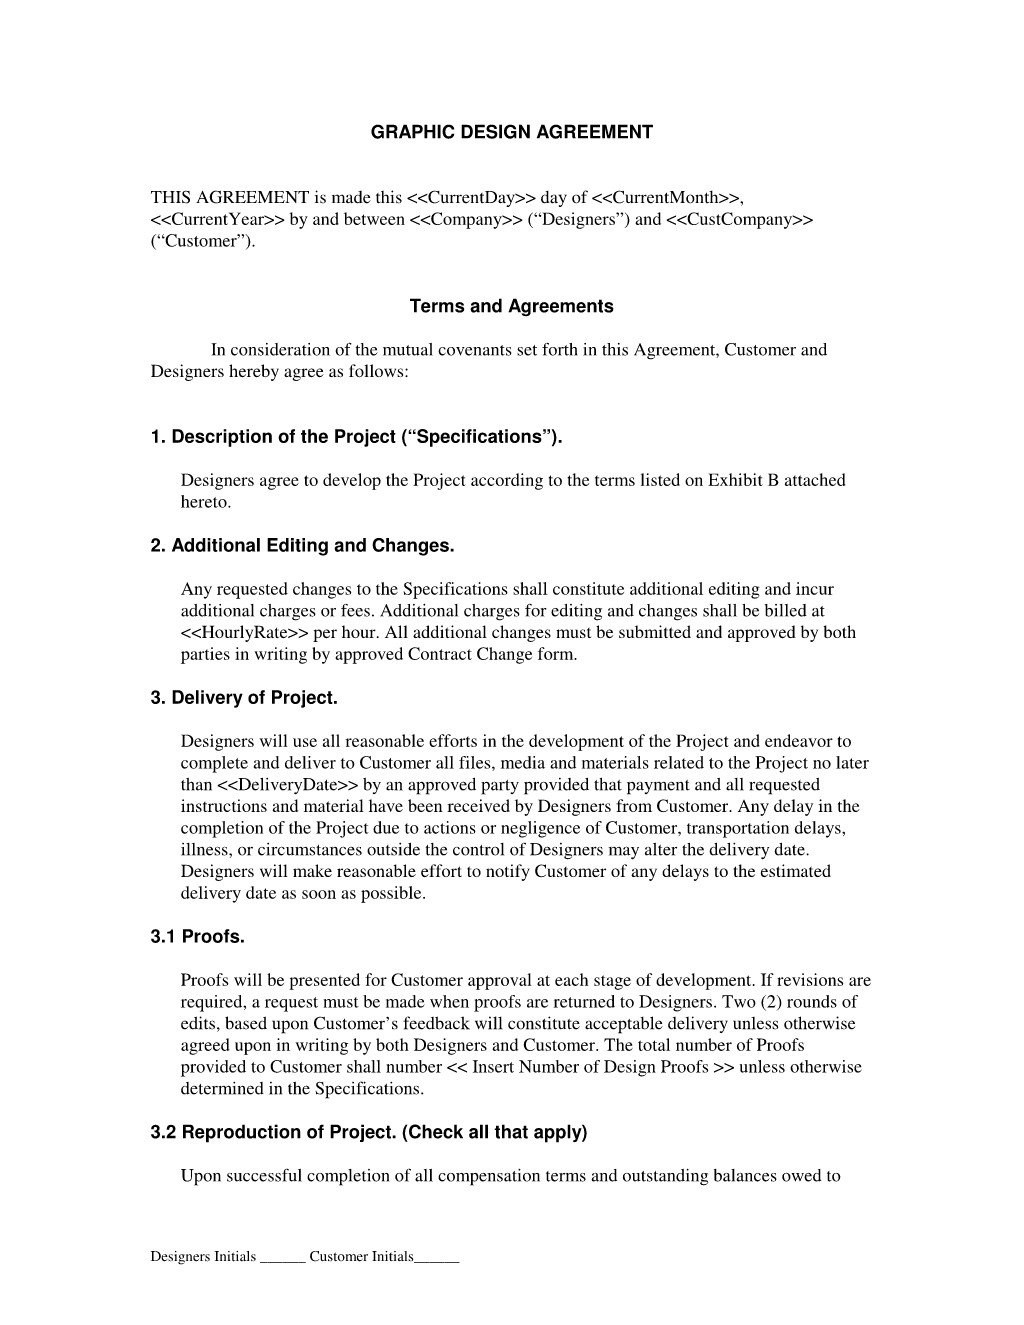 Graphic Design Contract Template Graphic Design Contract Agreement